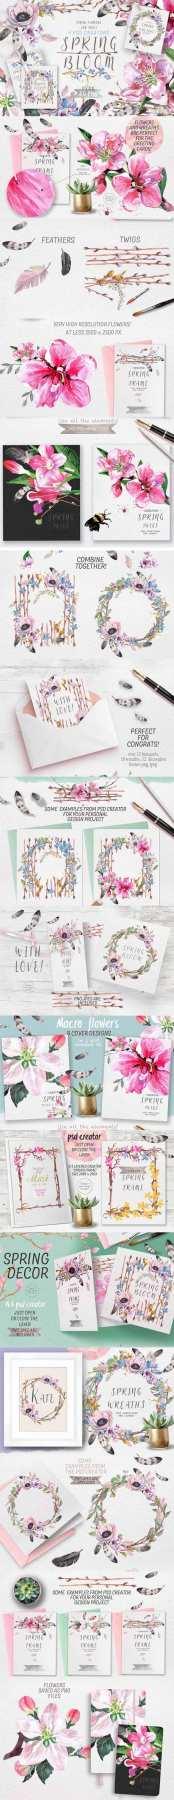 Spring bloom set 80 PNG 1358992